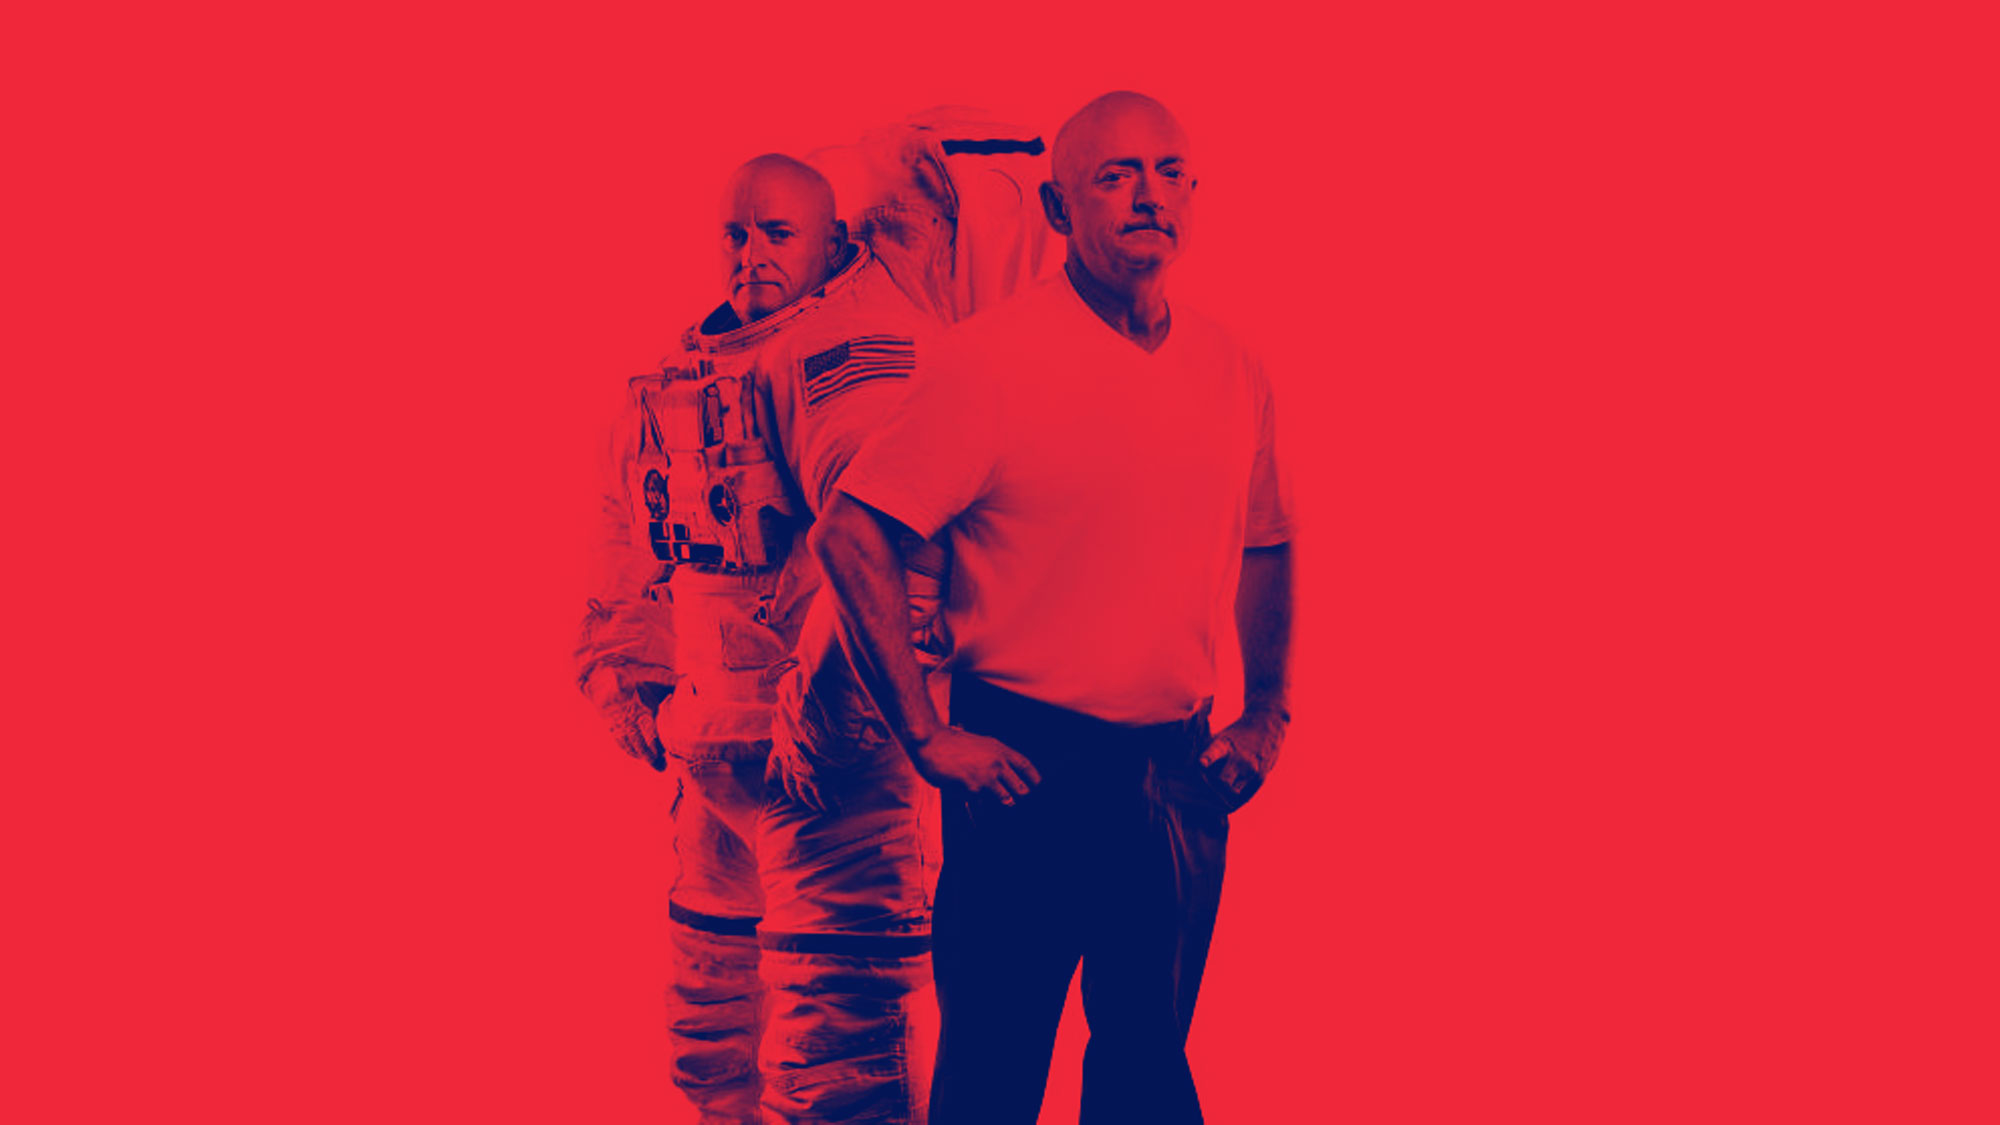 NASA | Image edited by MIT Technology Review